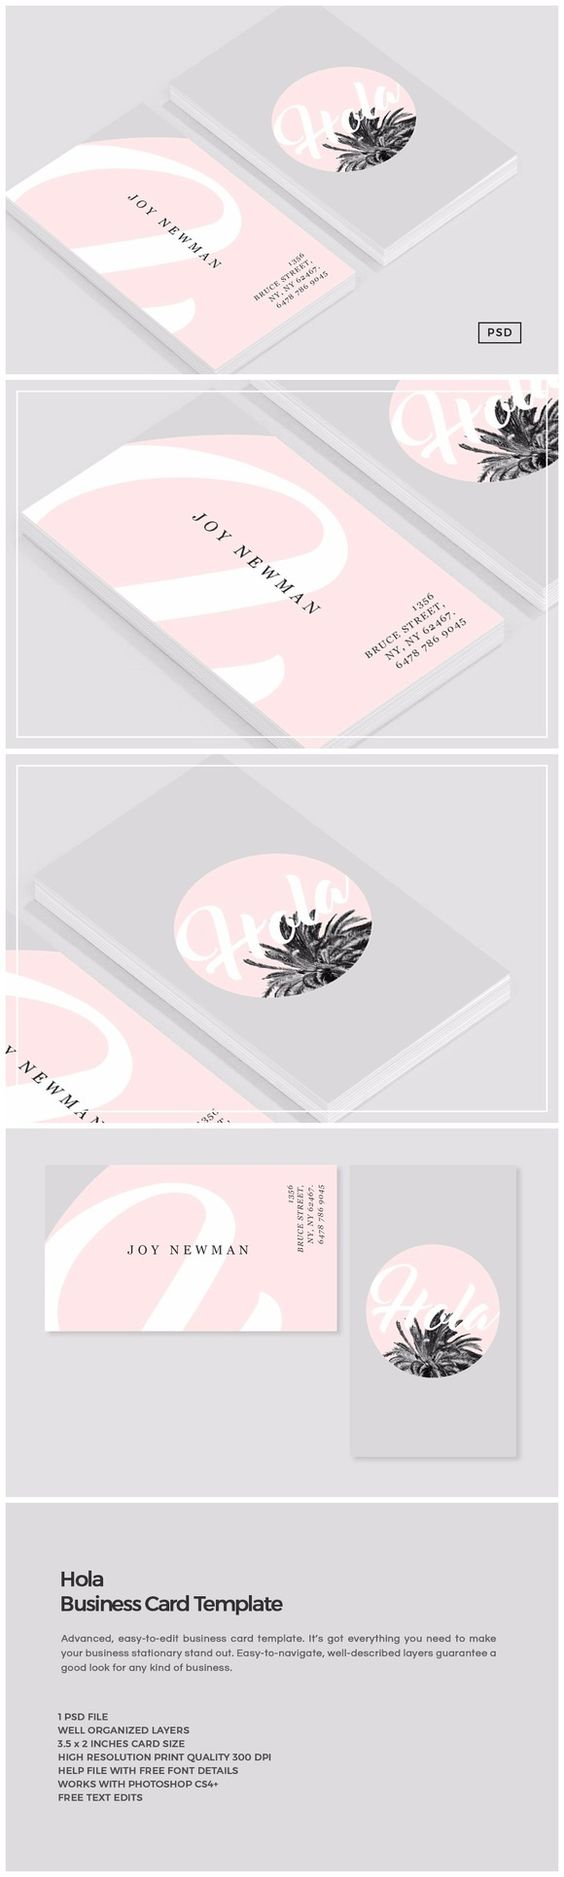 Pin by catherine laroche on business card pinterest business cards hola business card template by the design label on business card construction free printable reheart Choice Image